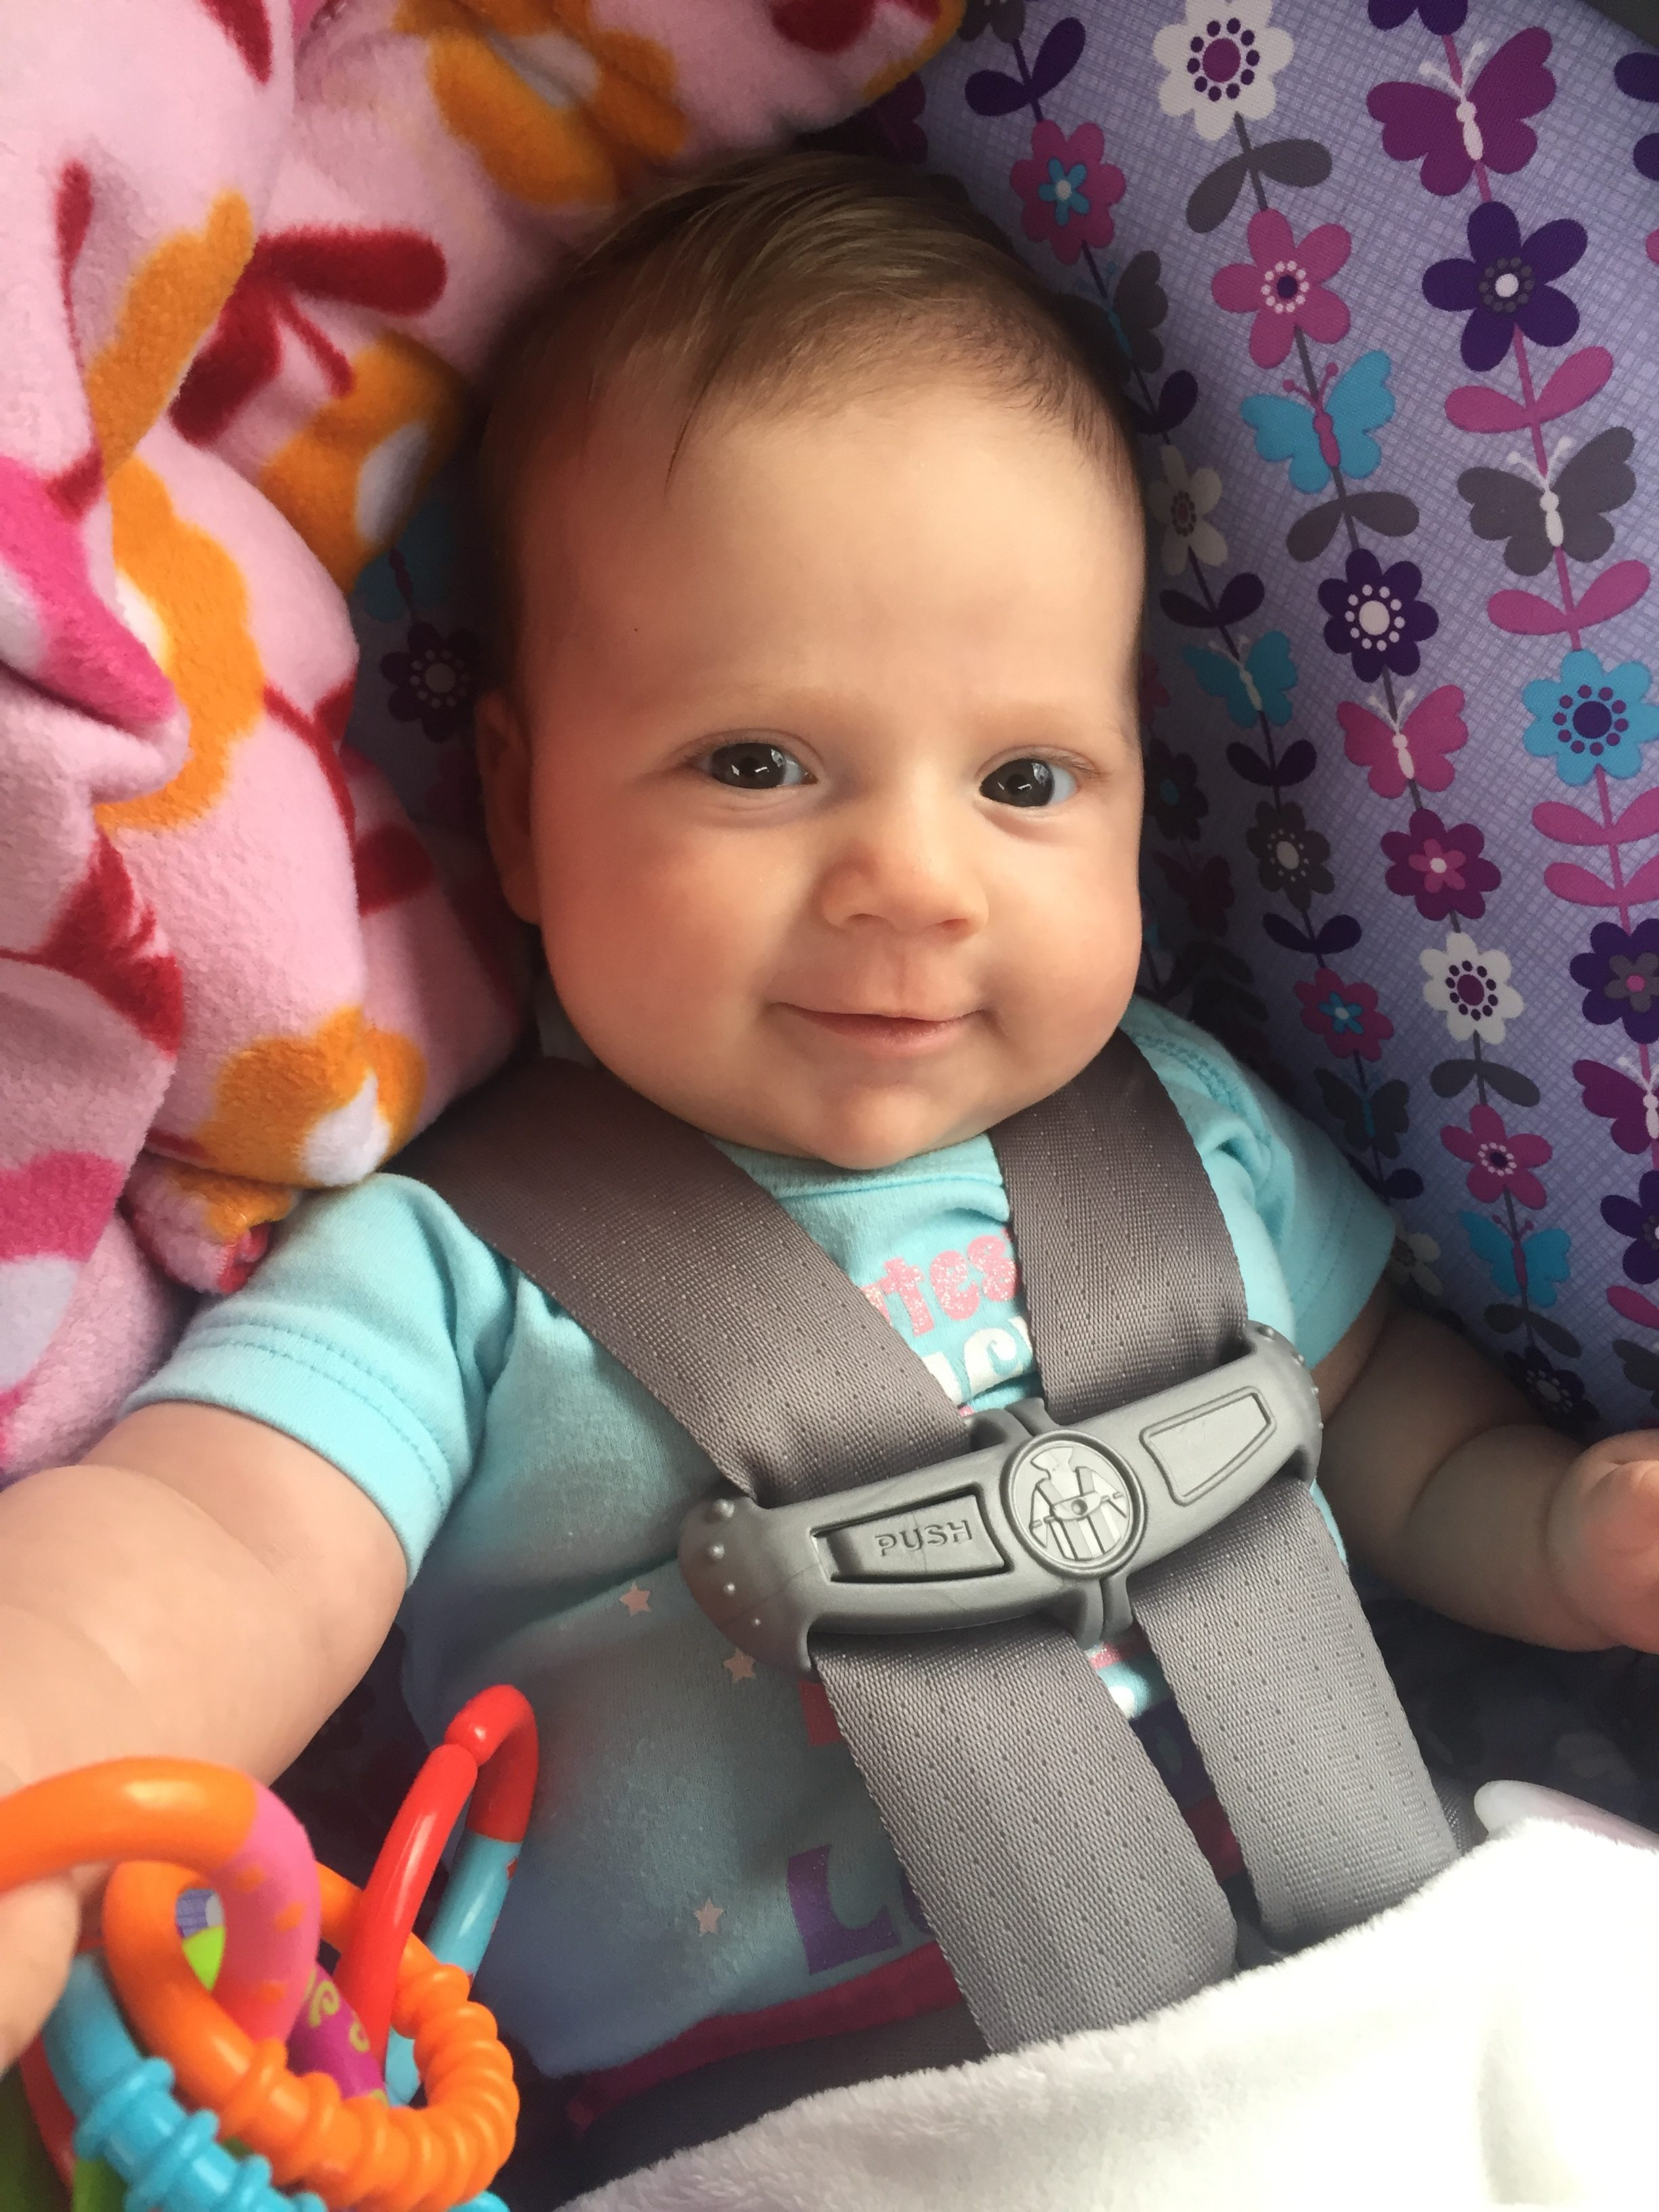 International Travel with an Infant Part 1: Getting There